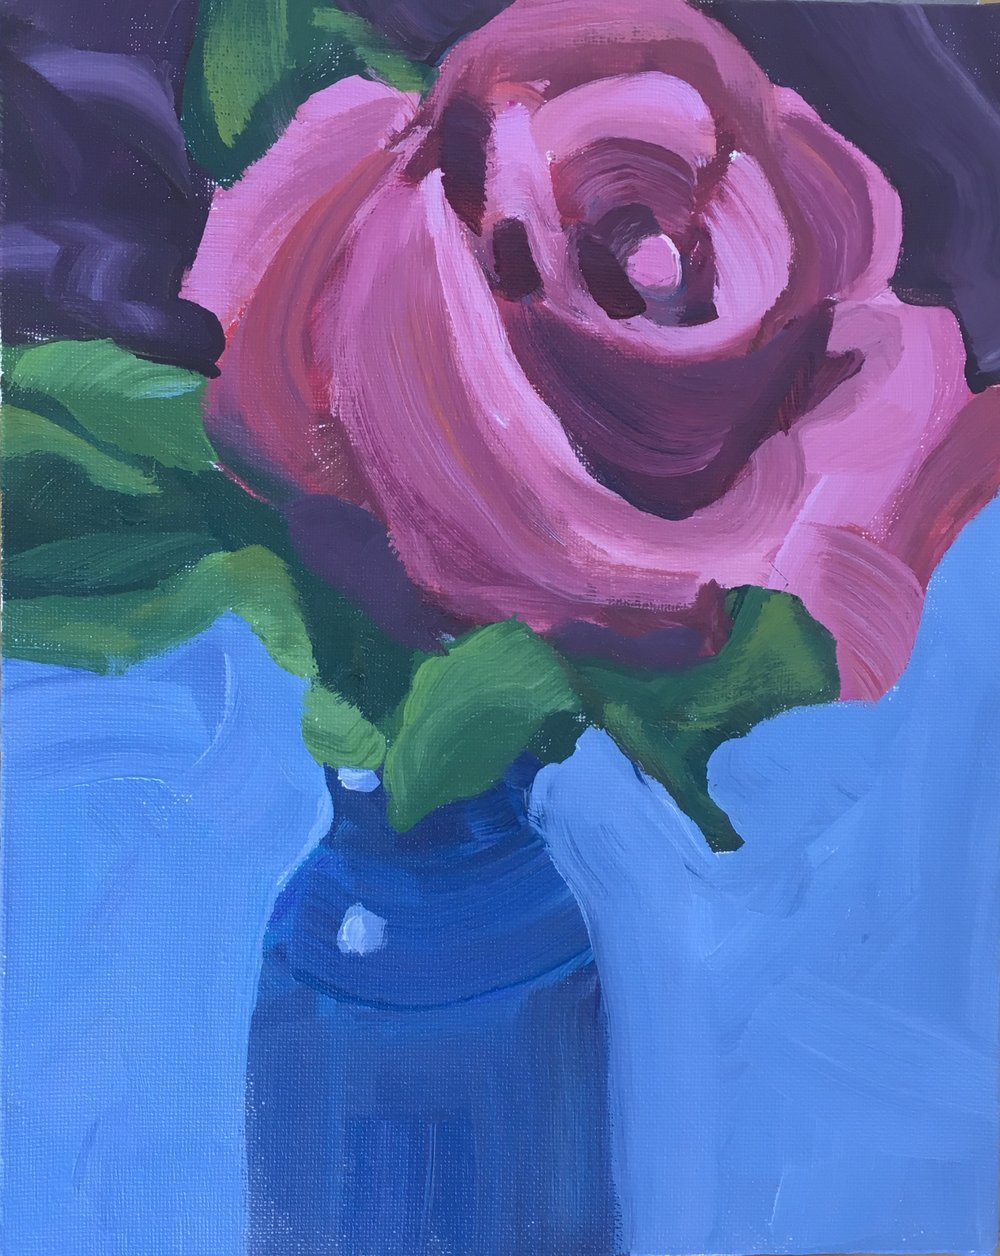 """184 Rose #2, Acrylic on 8""""x10"""" canvas panel, 30-minute painting"""